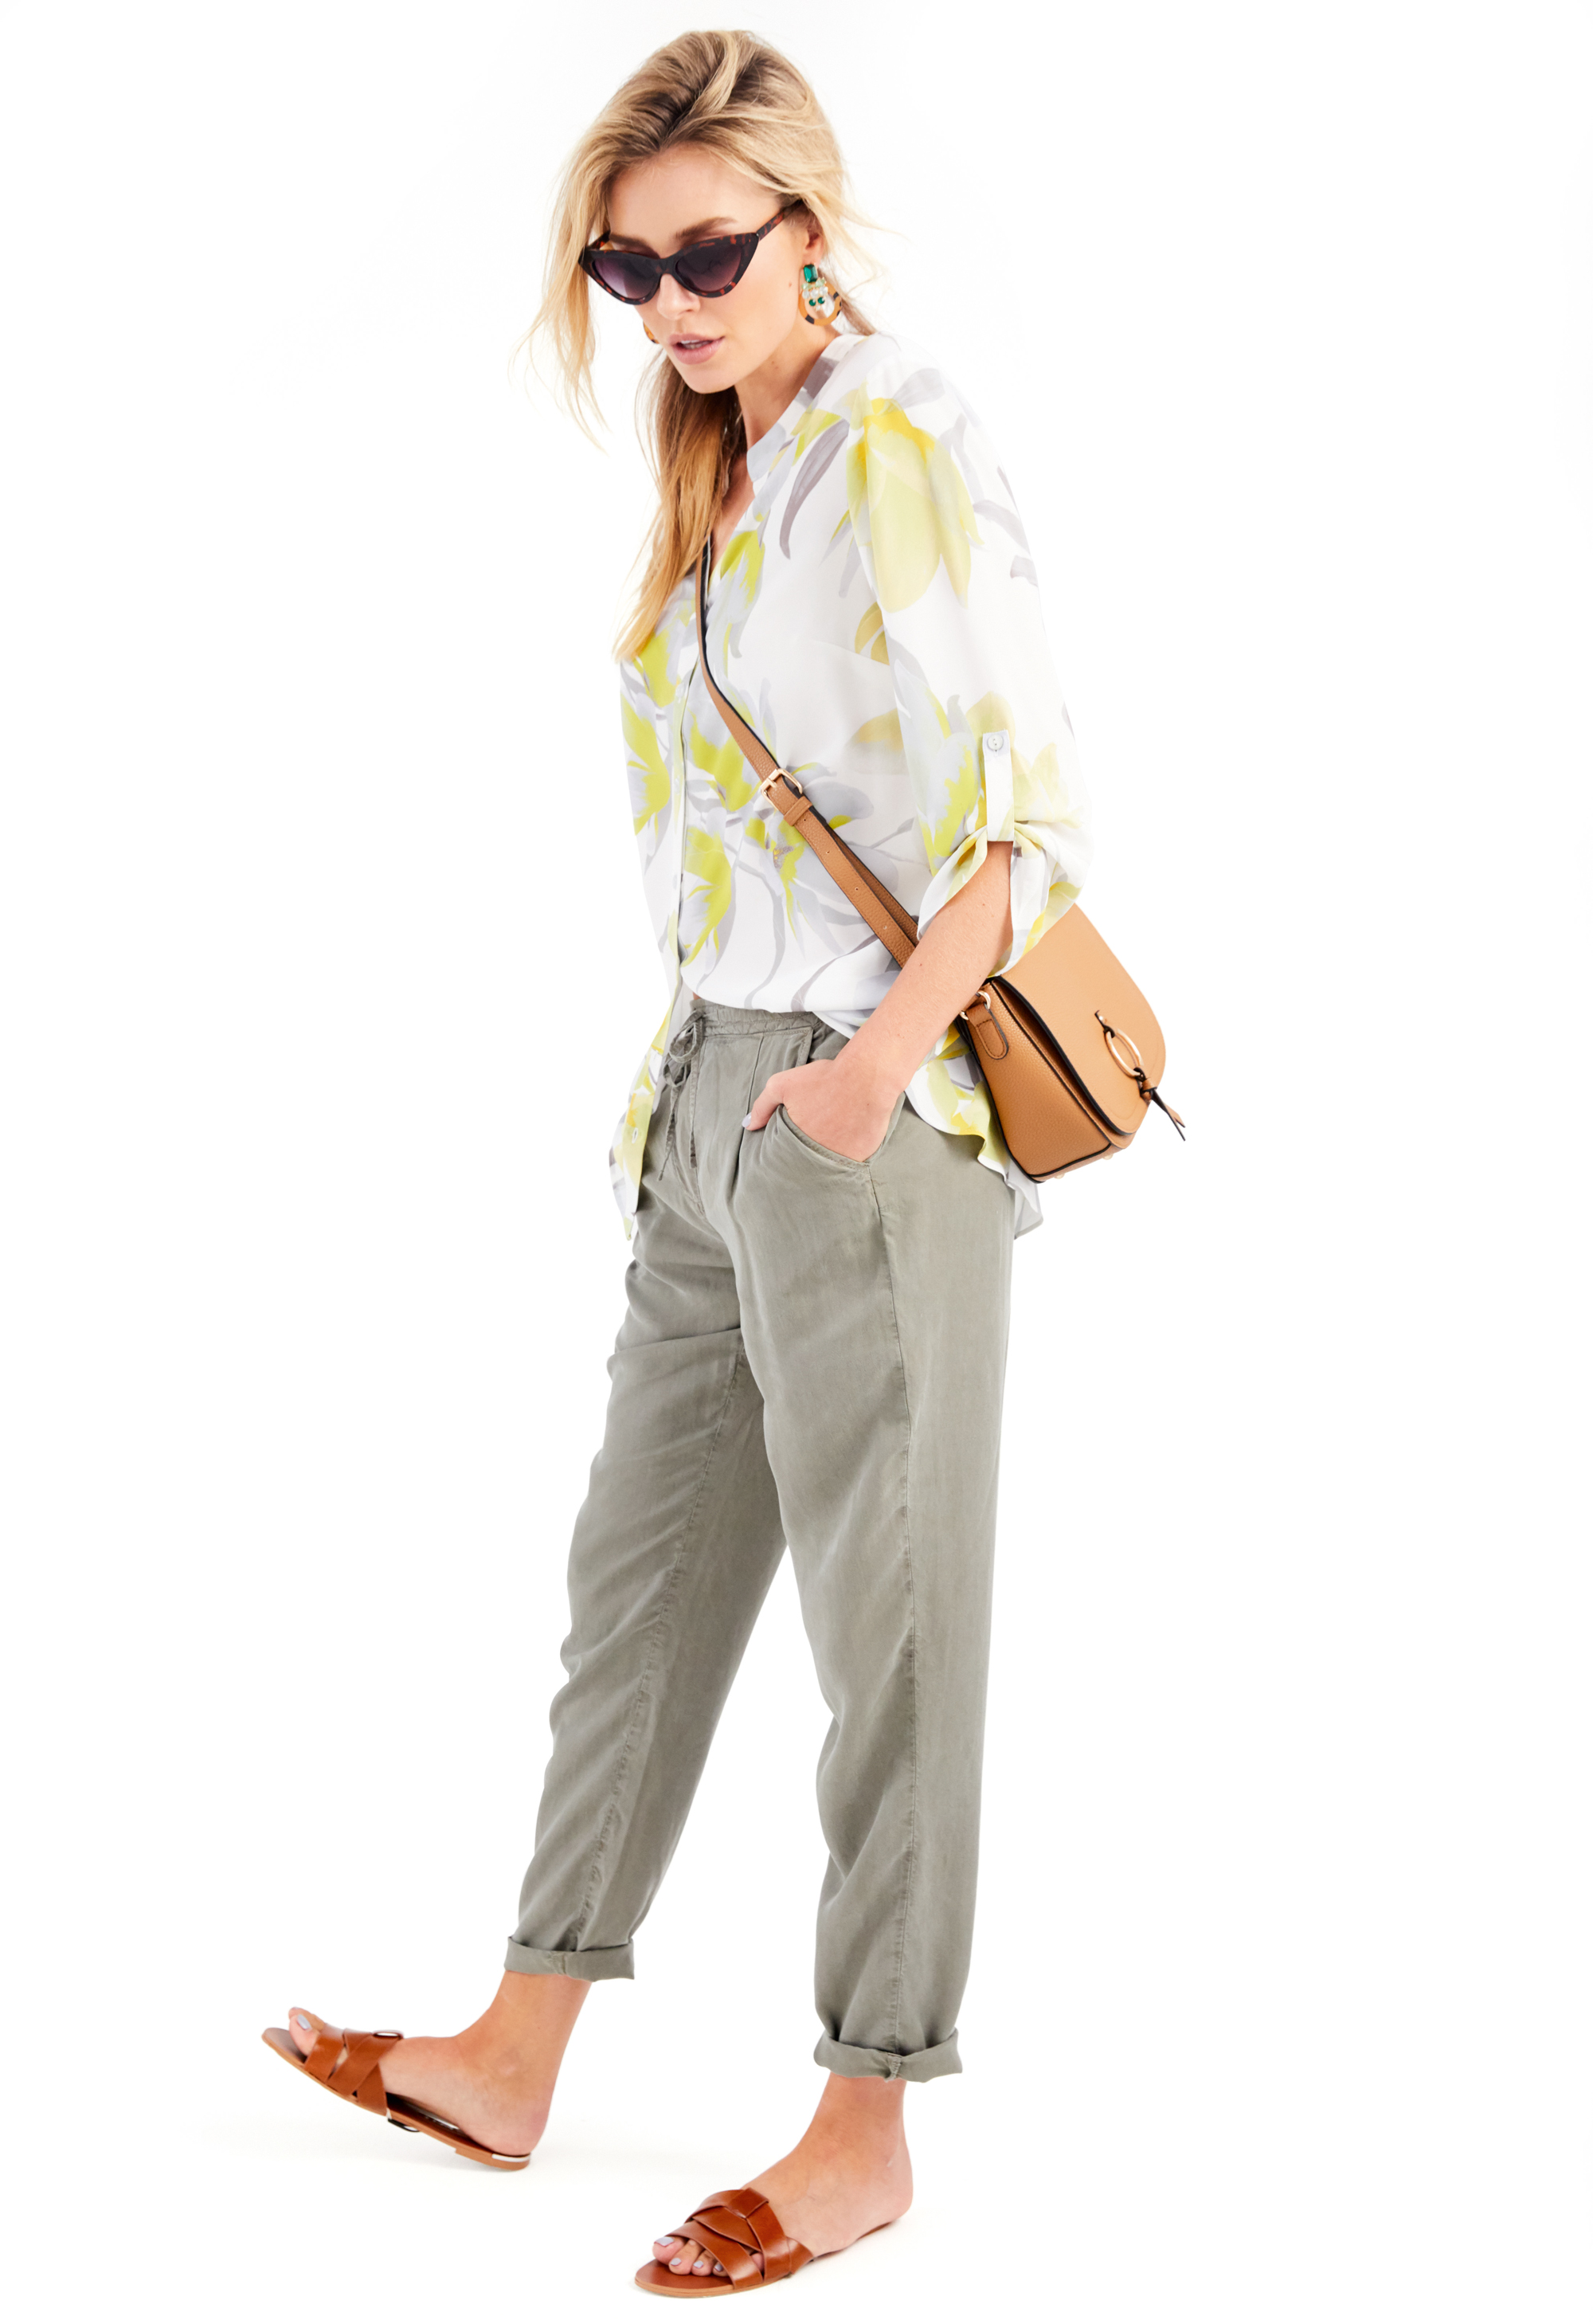 Damart Printed Longline Blouse; Khaki Tencel Trousers; Camel Bag (other items, stylist's own)